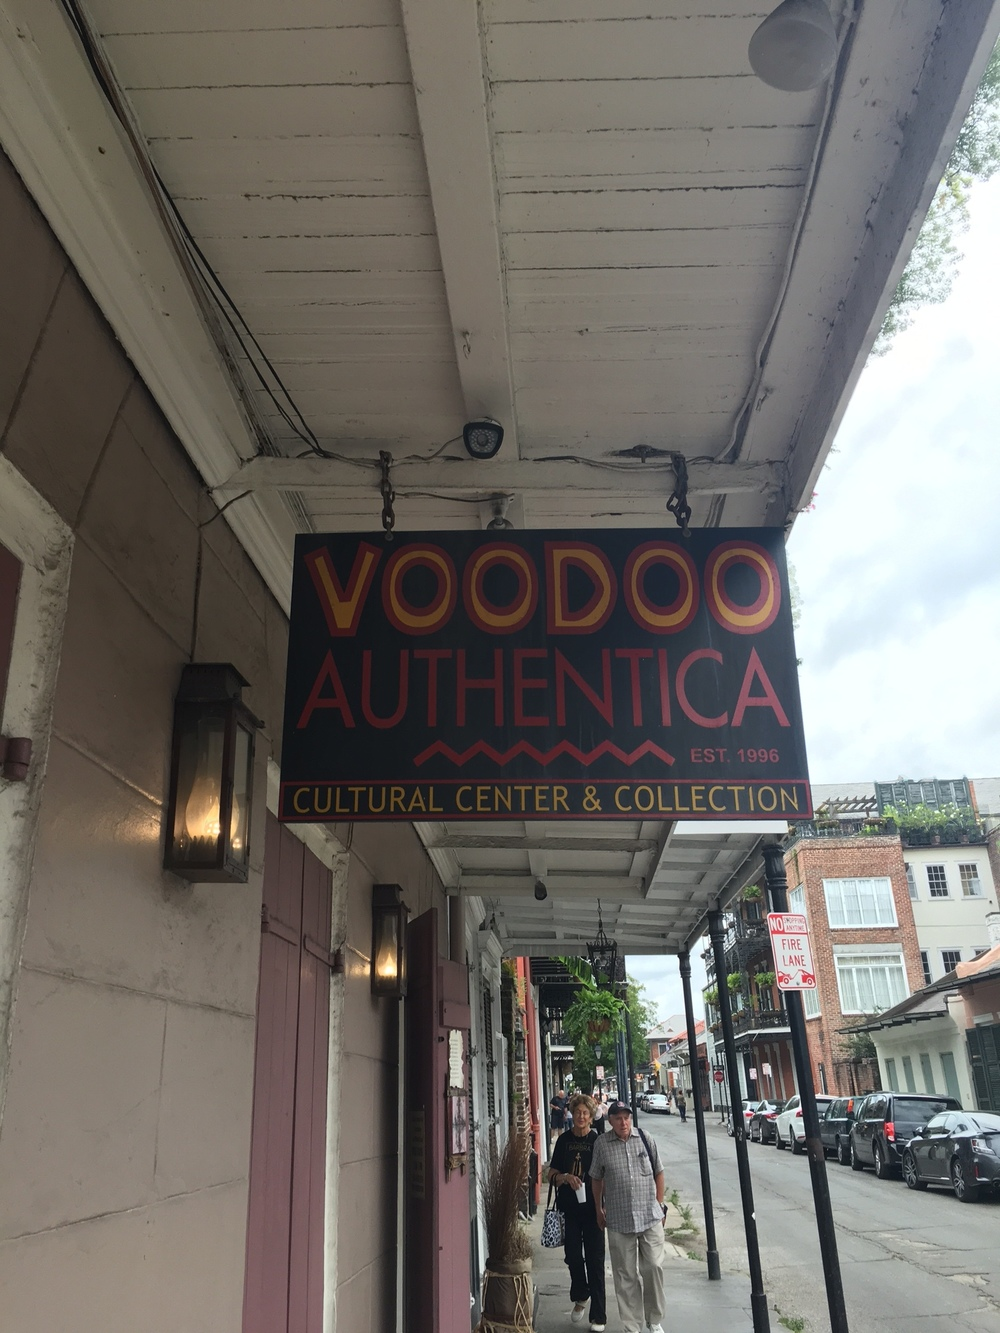 The first Voodoo store we visited.